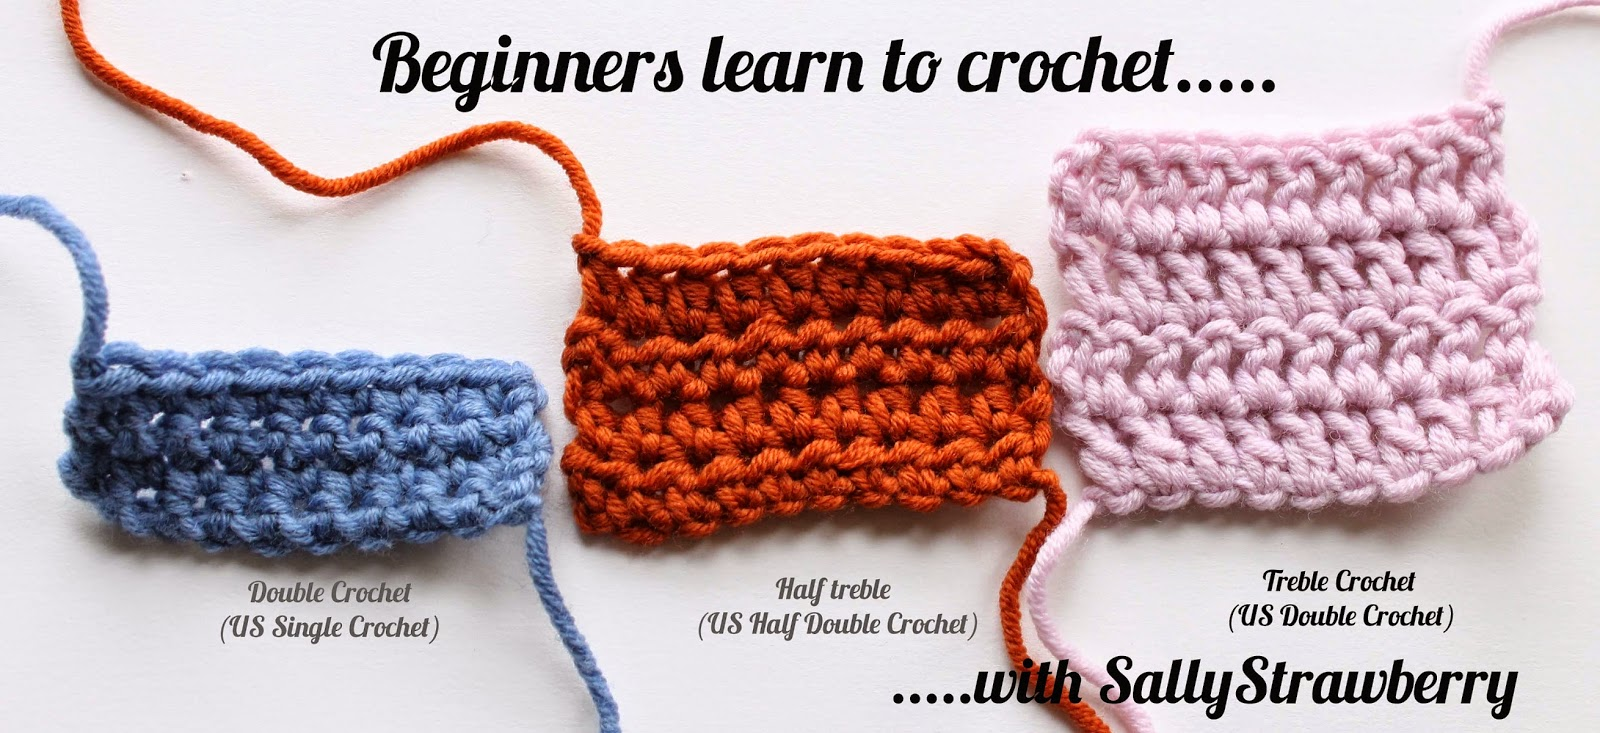 How To Crochet For Beginners : Beginners+Learn+to+Crochet-+treble+Crochet+title+page.jpg